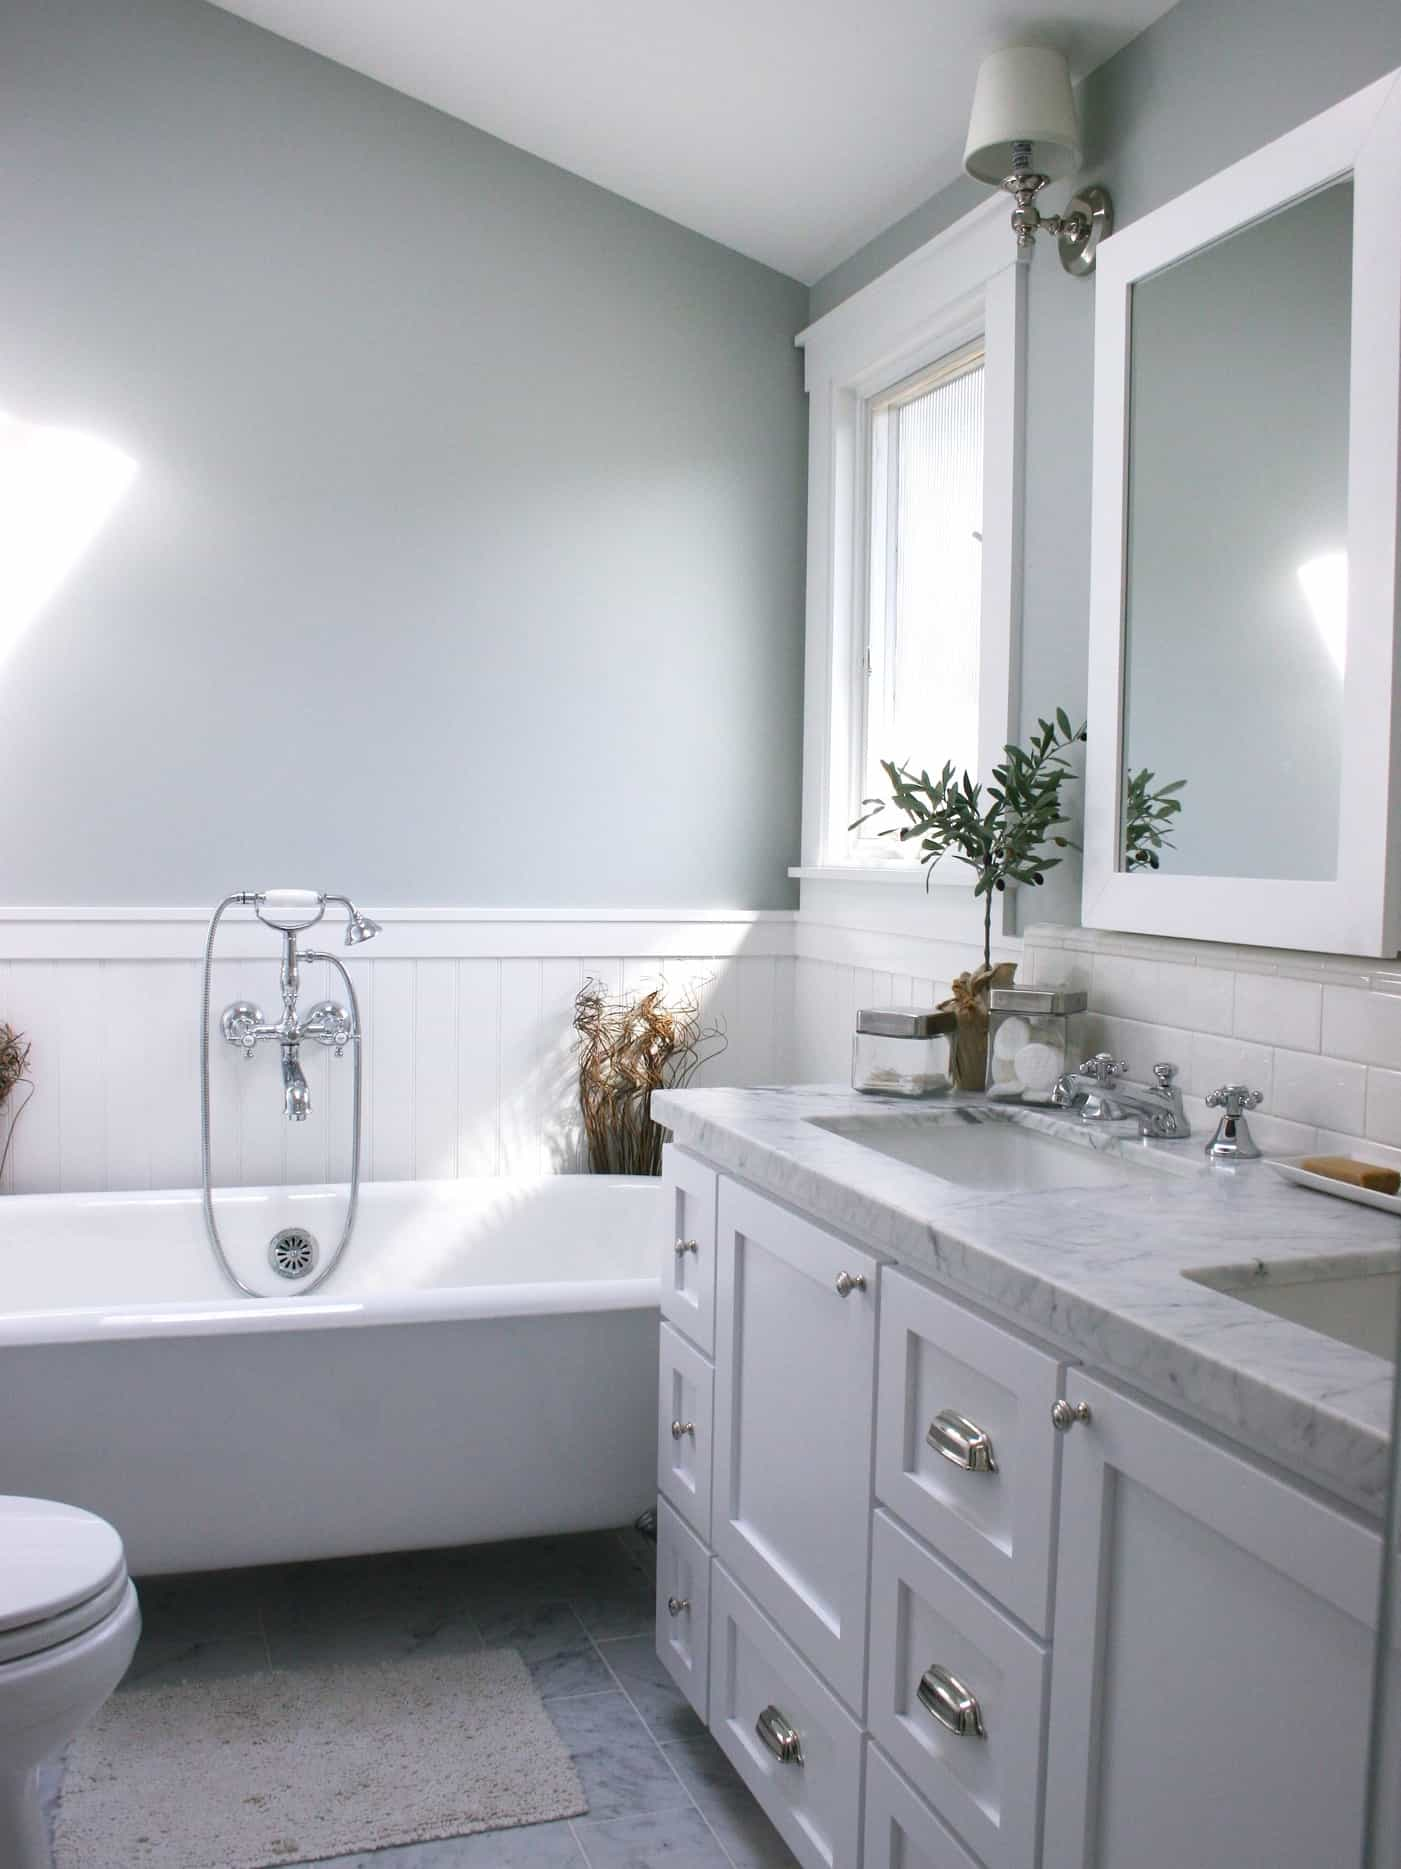 Featured Image of Gray Bathroom With White Wainscoting